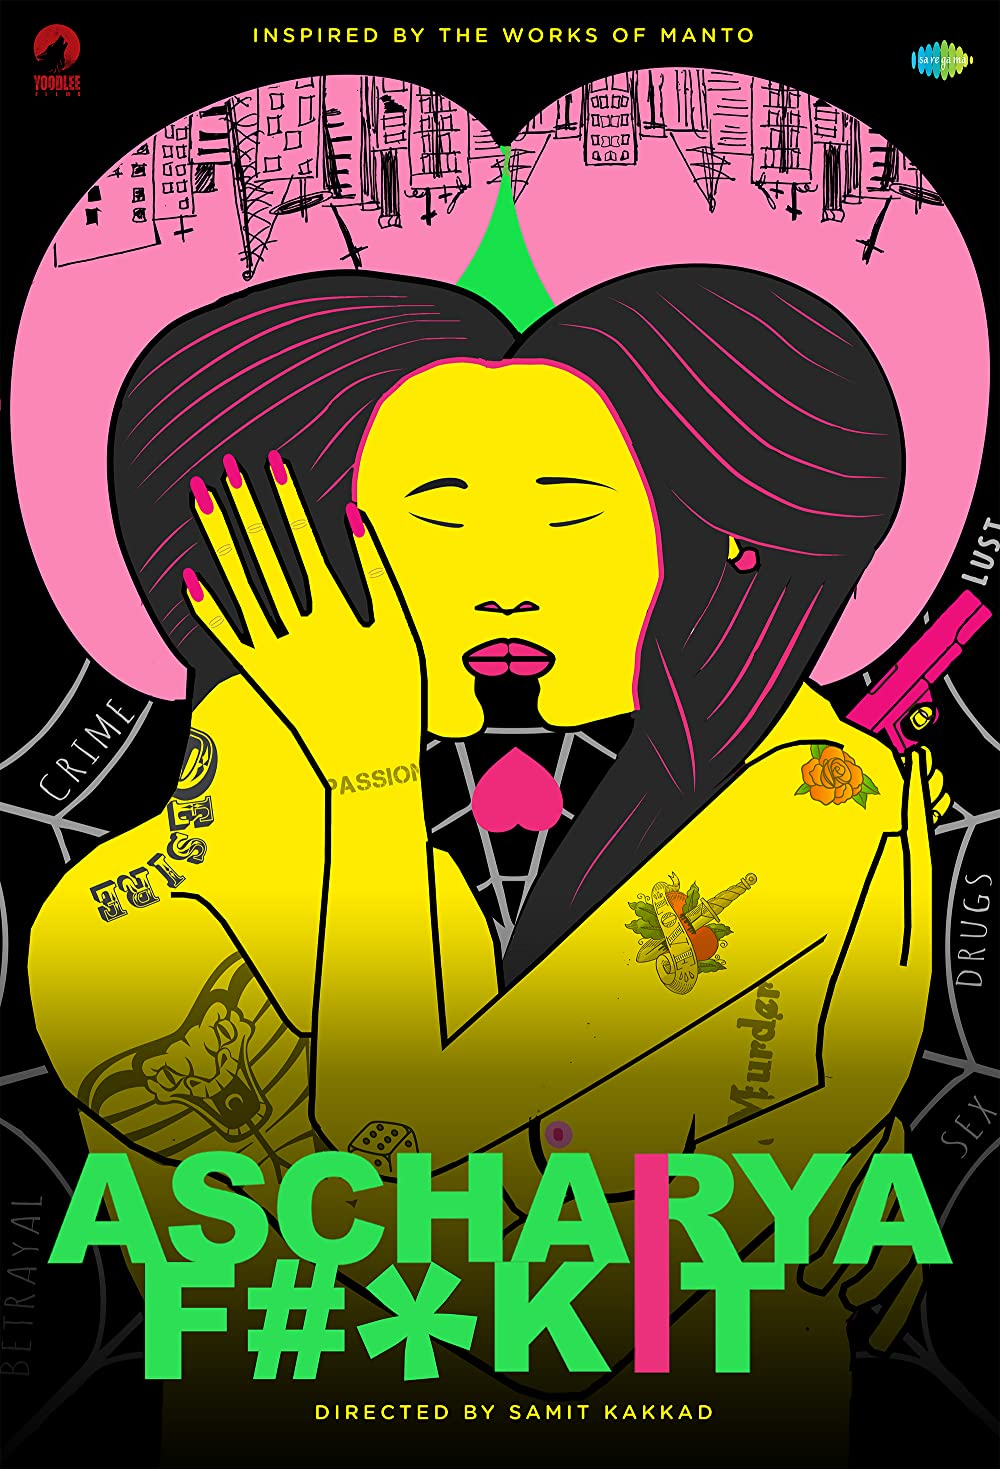 18+ Ascharya Fk It 2018 Hindi 720p UNRATED HDRip ESub 650MB Download